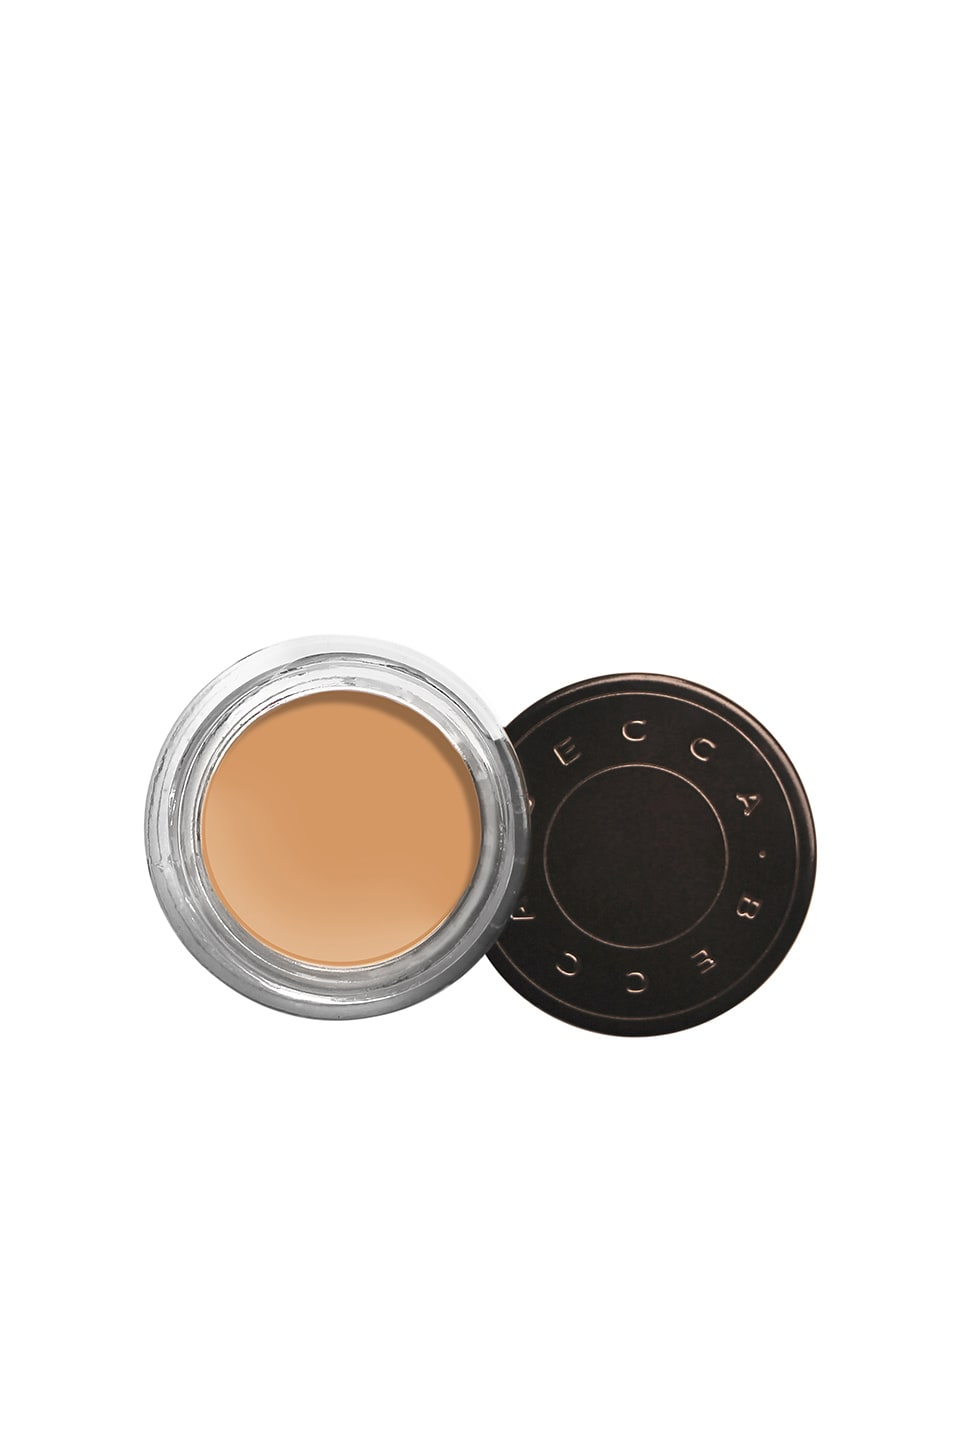 BECCA Ultimate Coverage Concealing Creme in Brulee